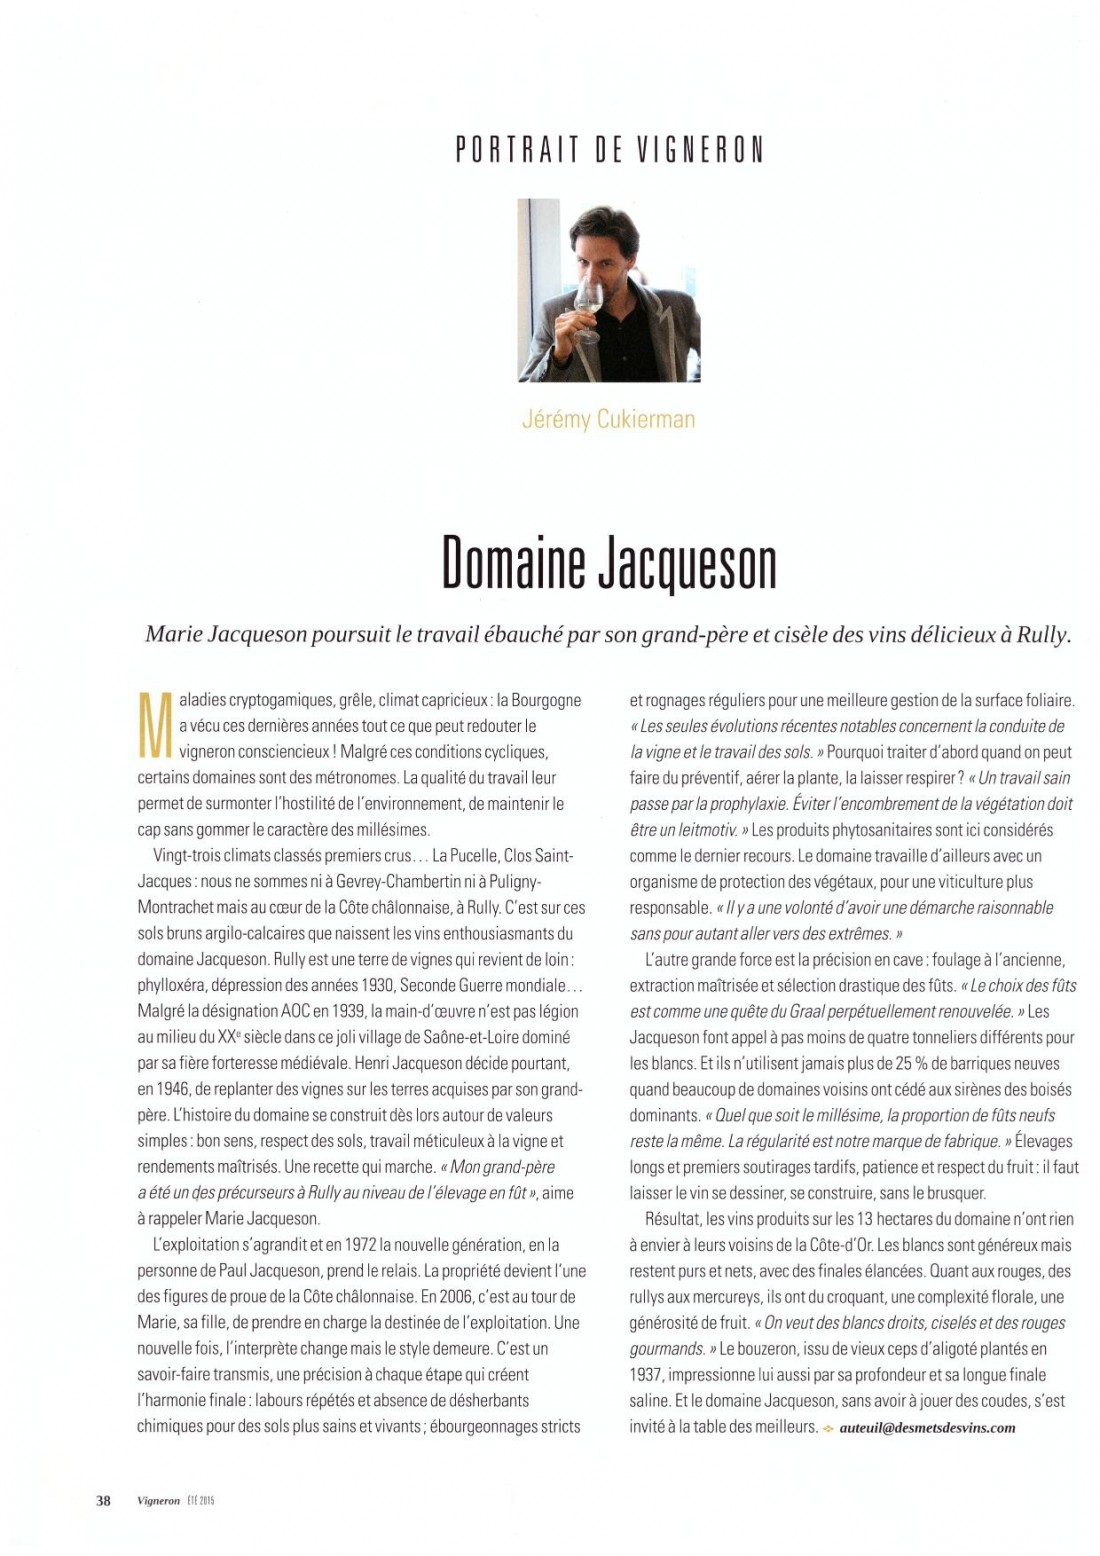 Article vigneron Jacqueson